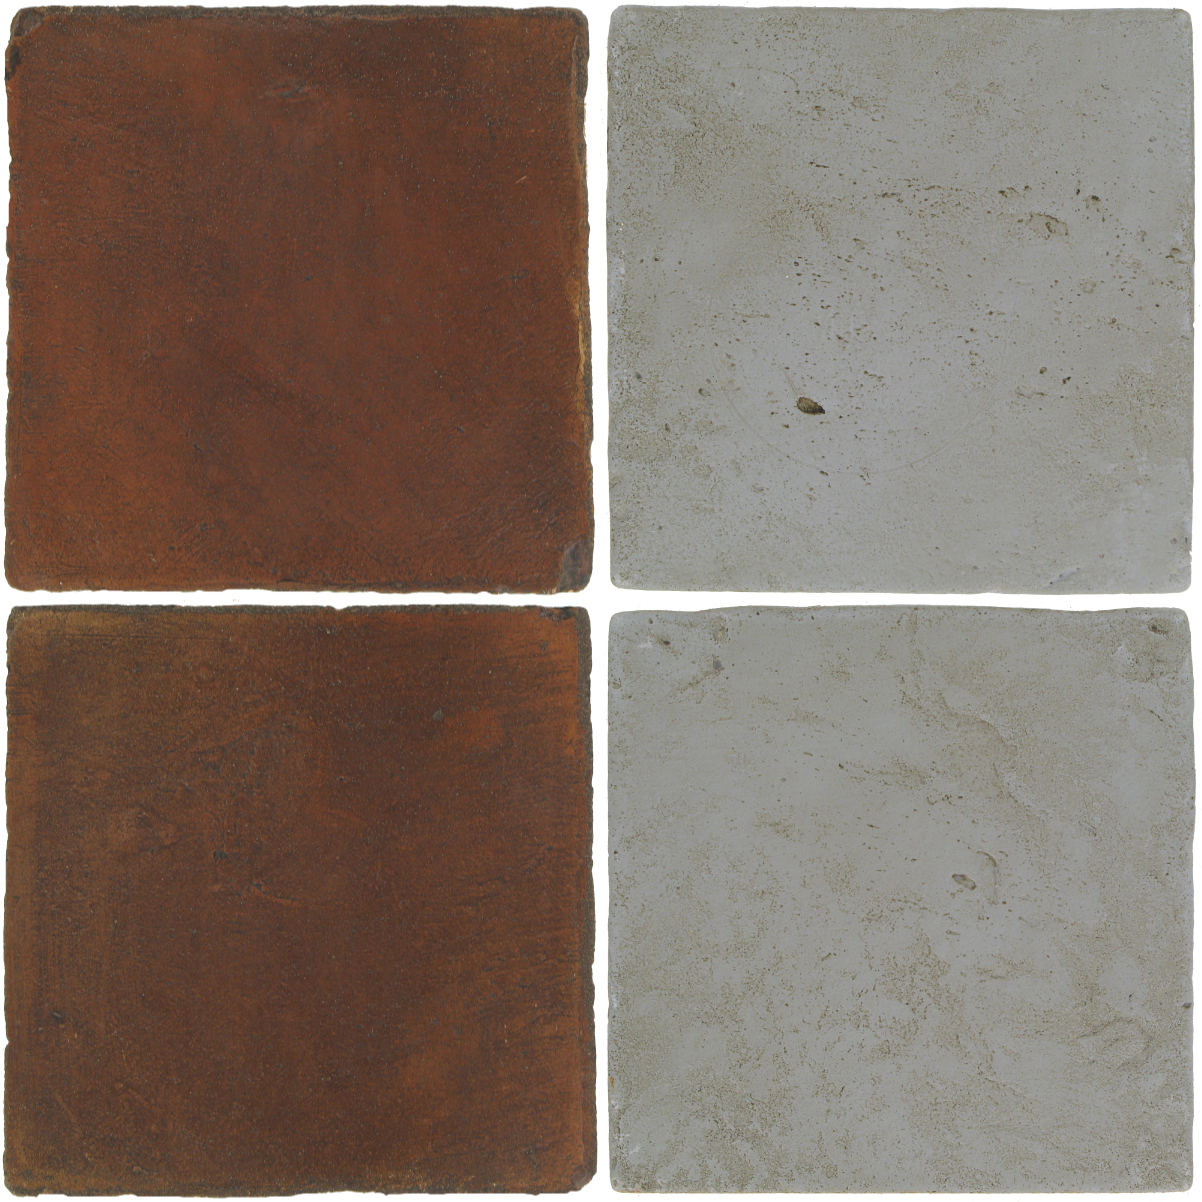 Pedralbes Antique Terracotta  2 Color Combinations  OHS-PSOW Old World + VTG-PGOG Oyster Grey